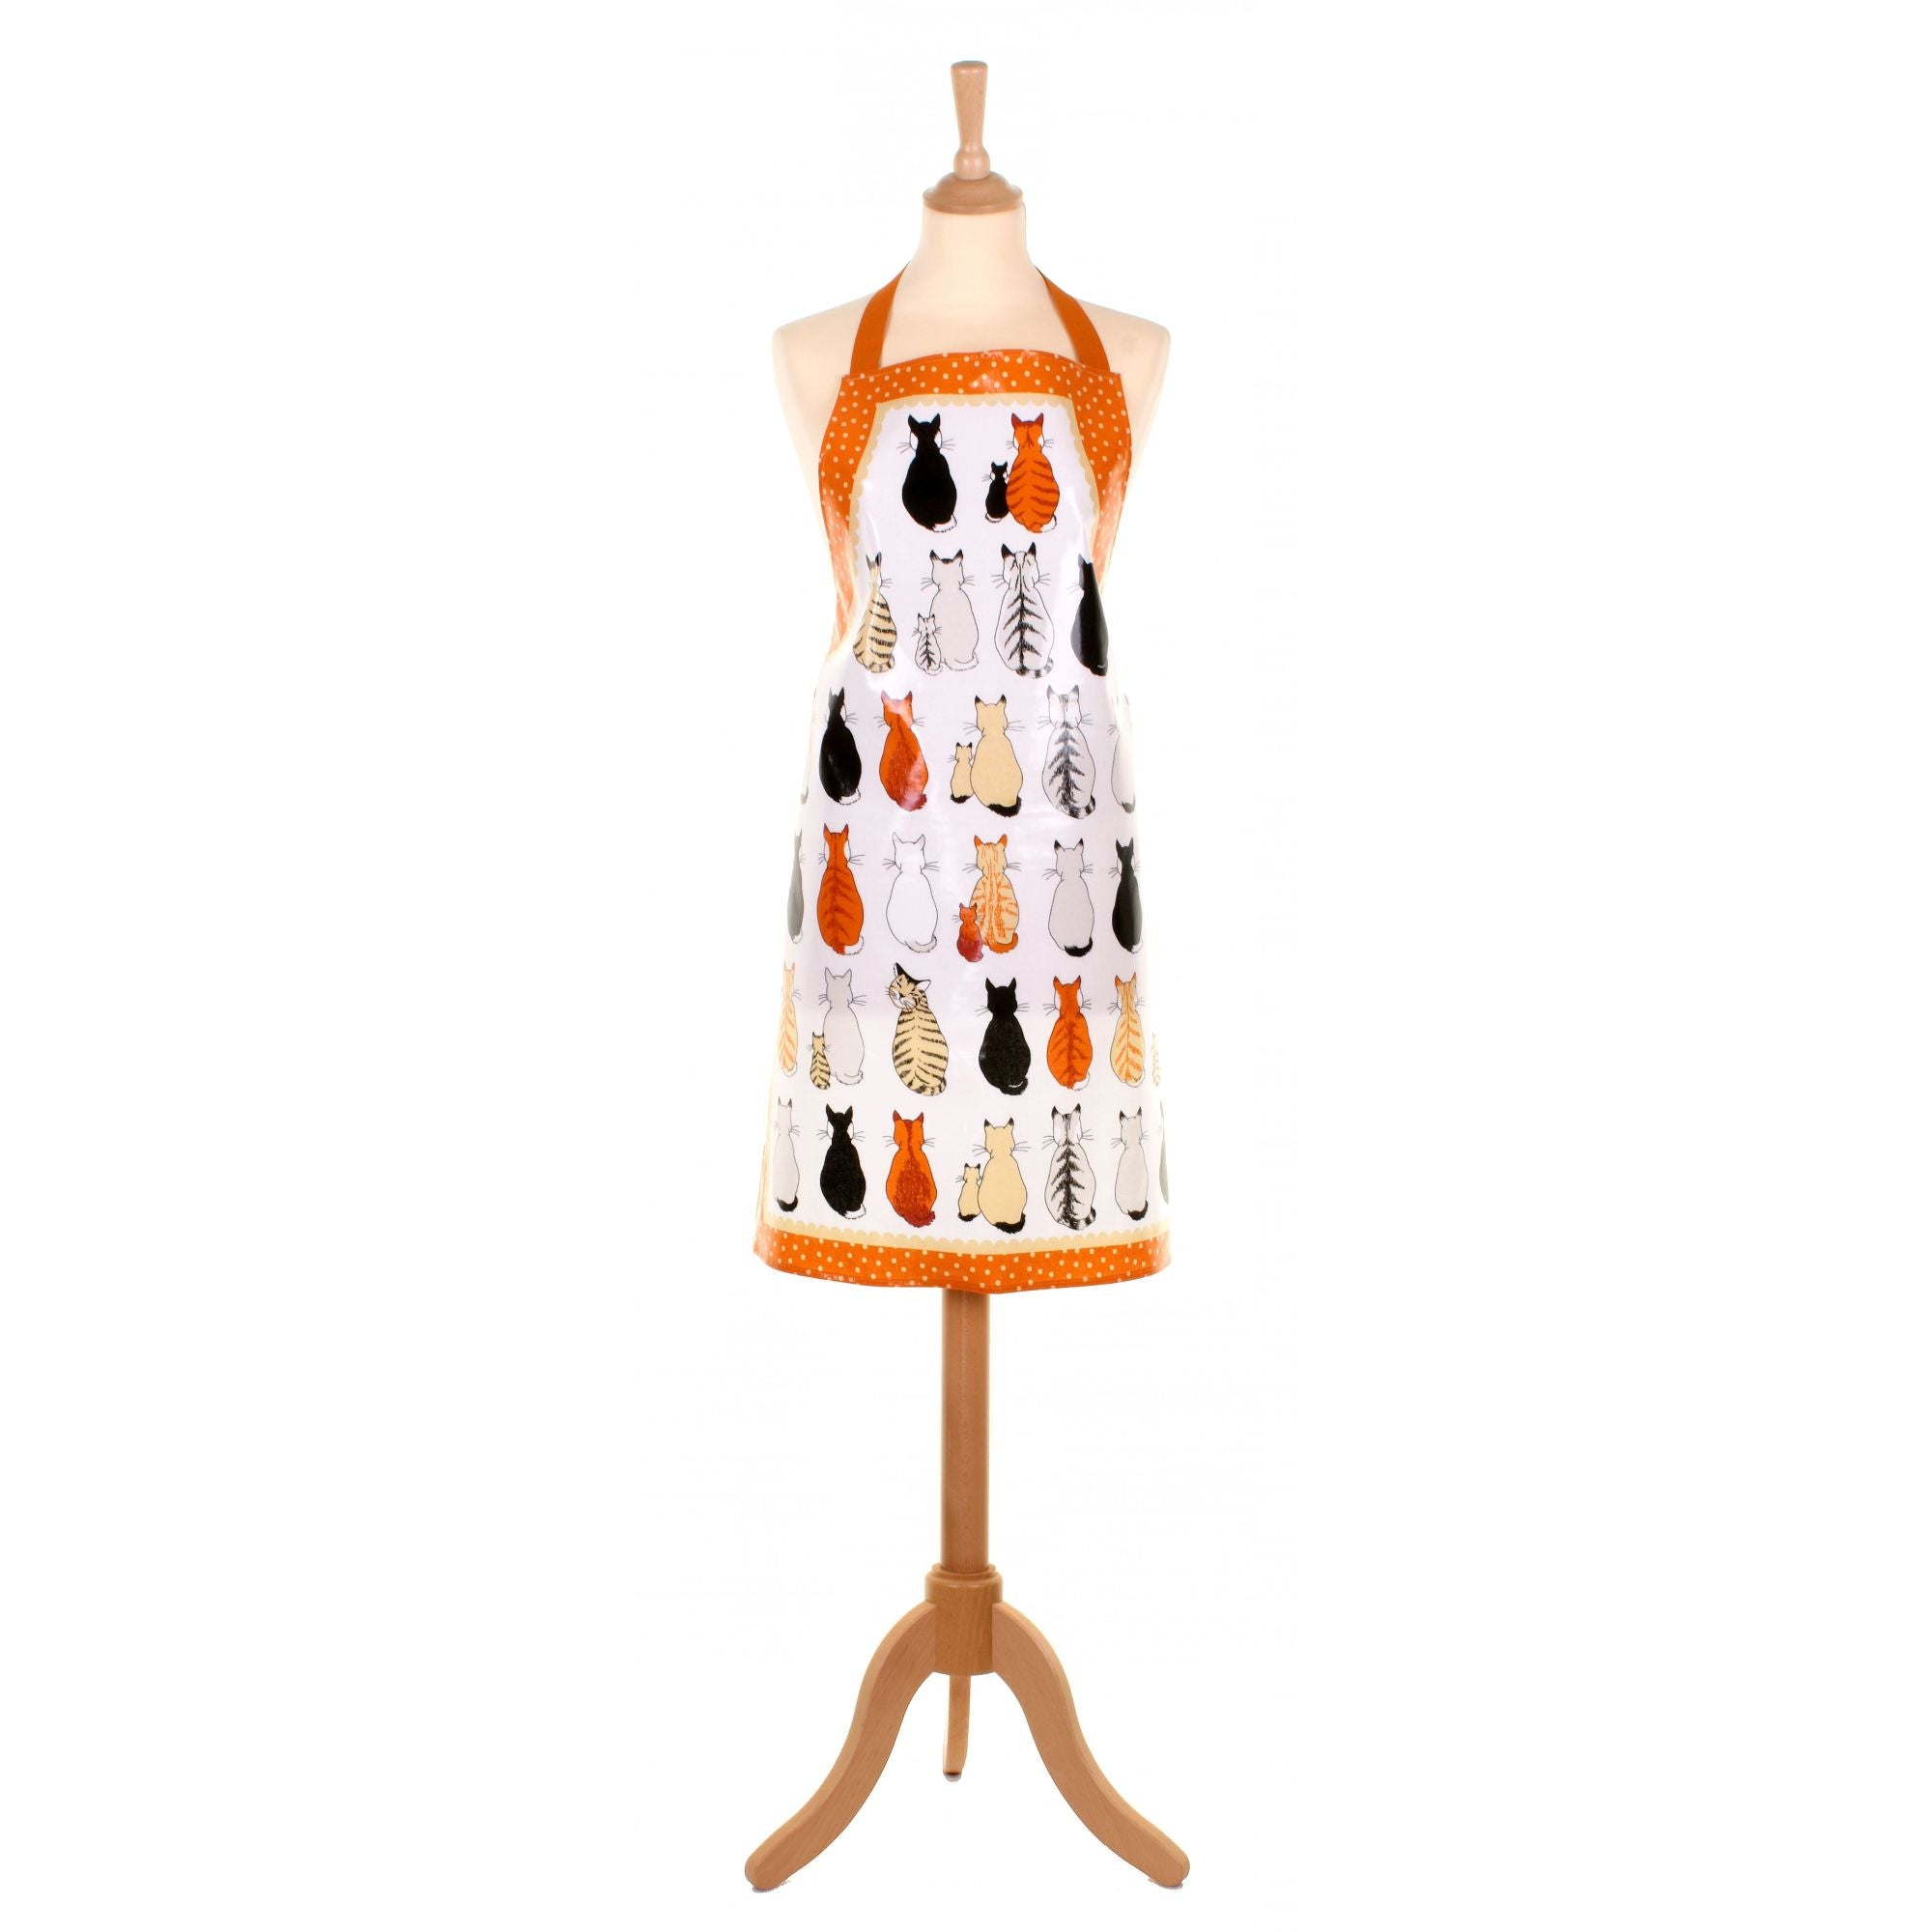 Cats in Waiting PVC apron by Ulster Weavers